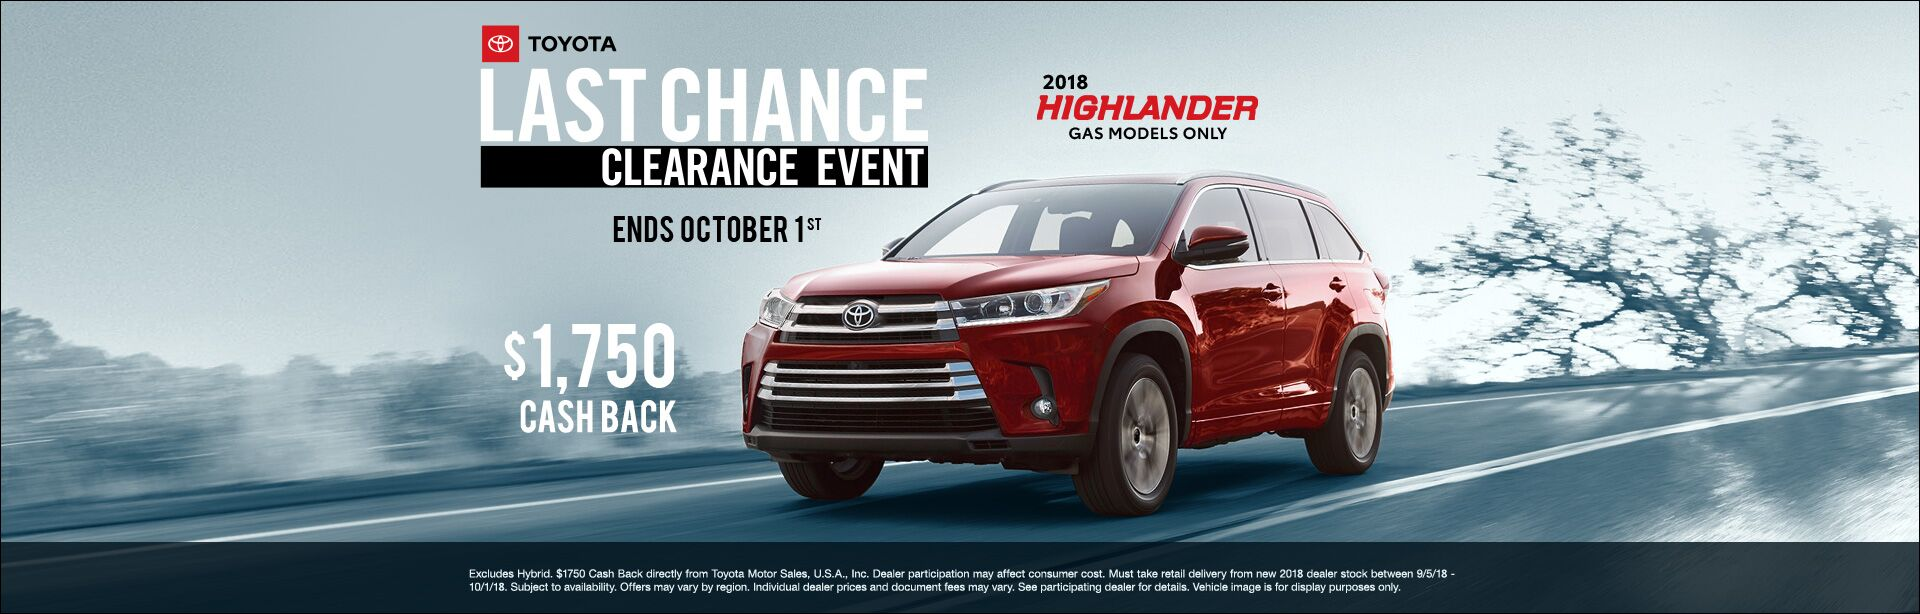 Highlander Cash Back Sept 2018